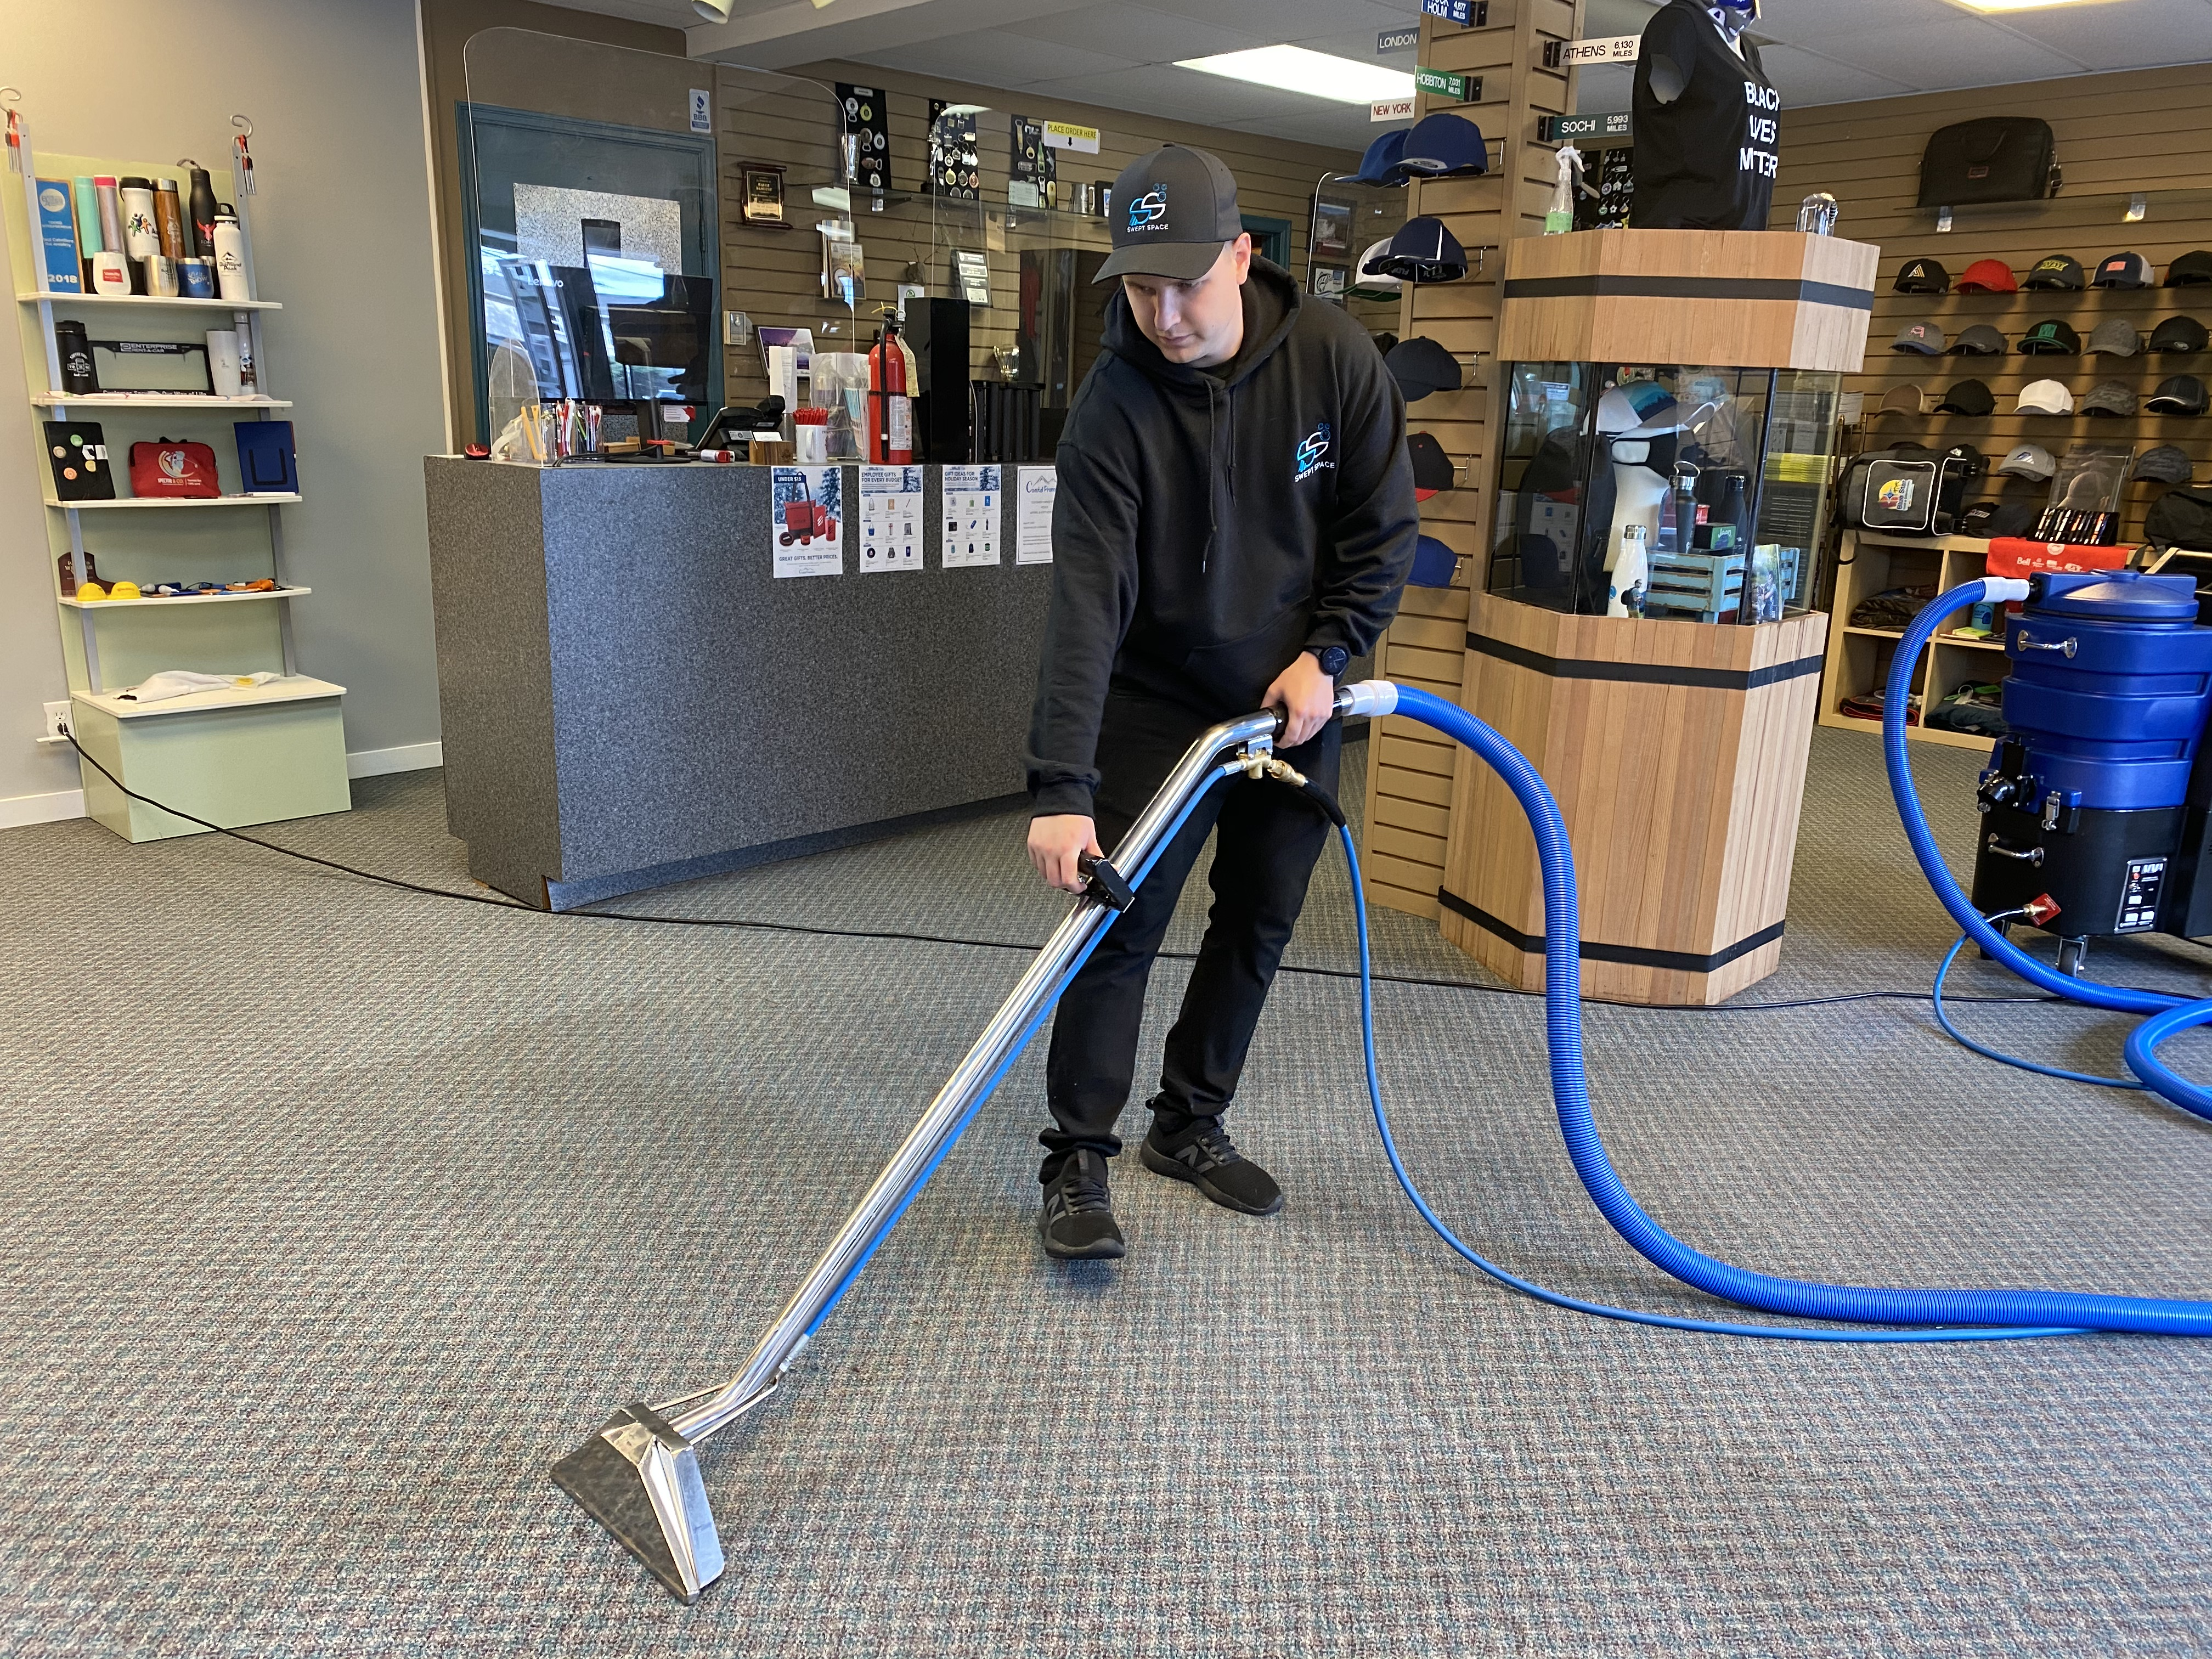 person mopping the floor of an office